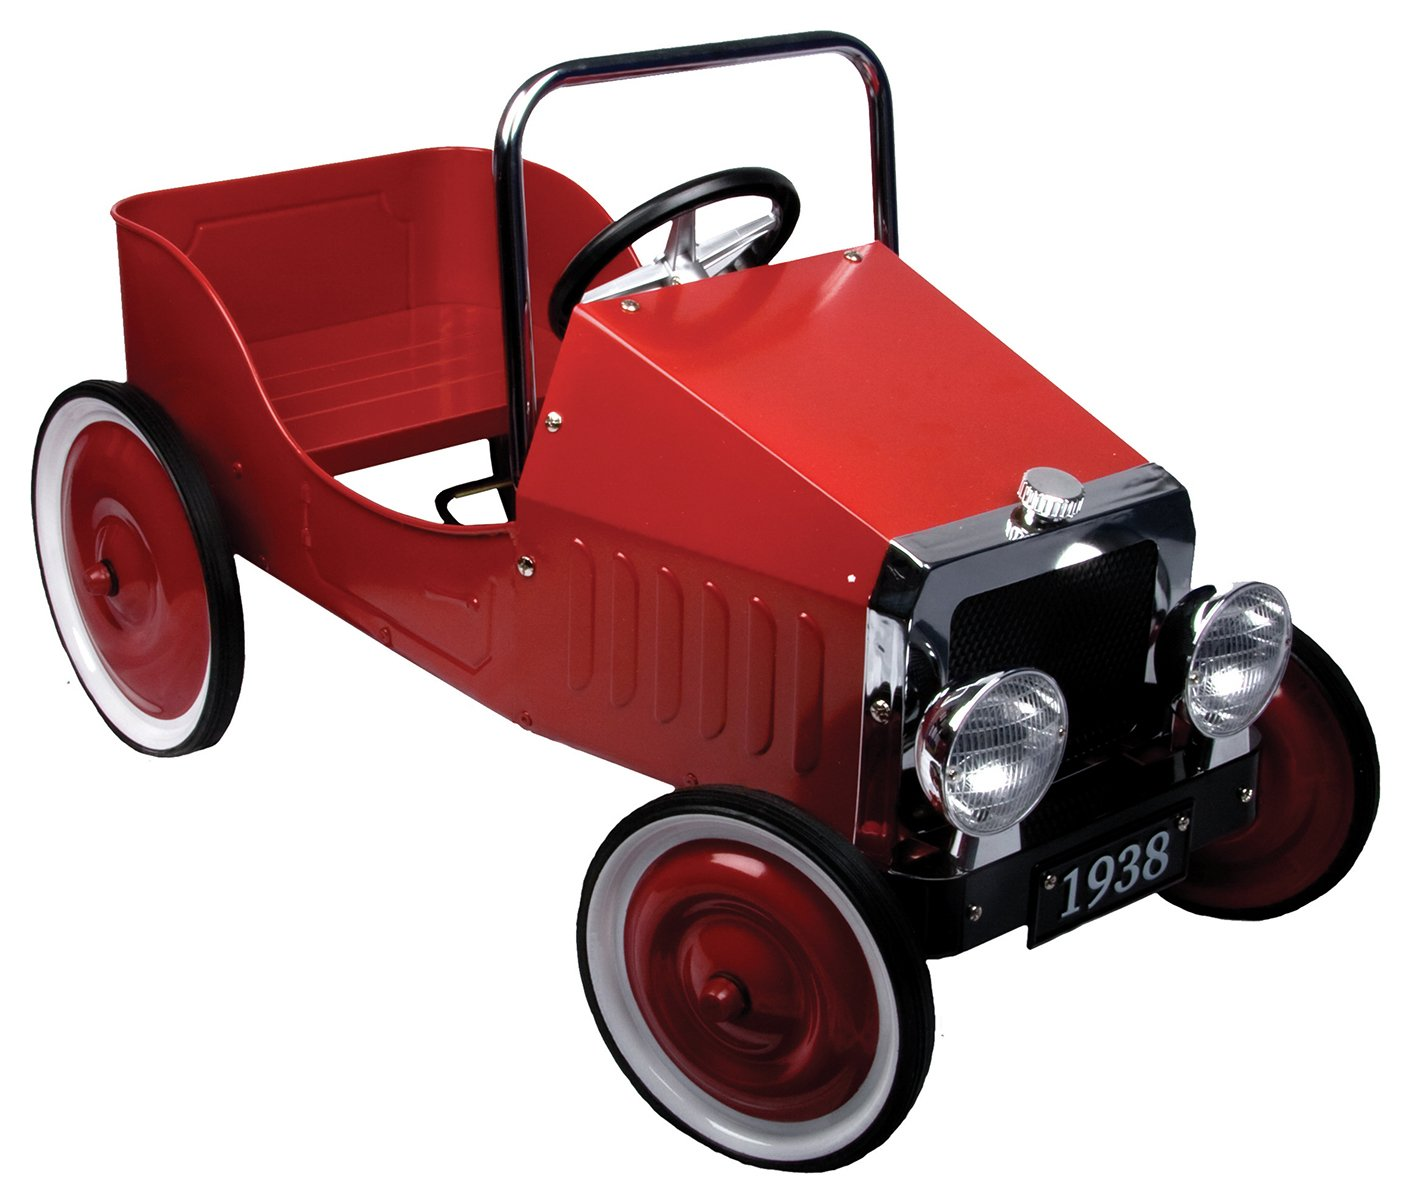 Image of Great Gizmos Classic Pedal Car - Red.